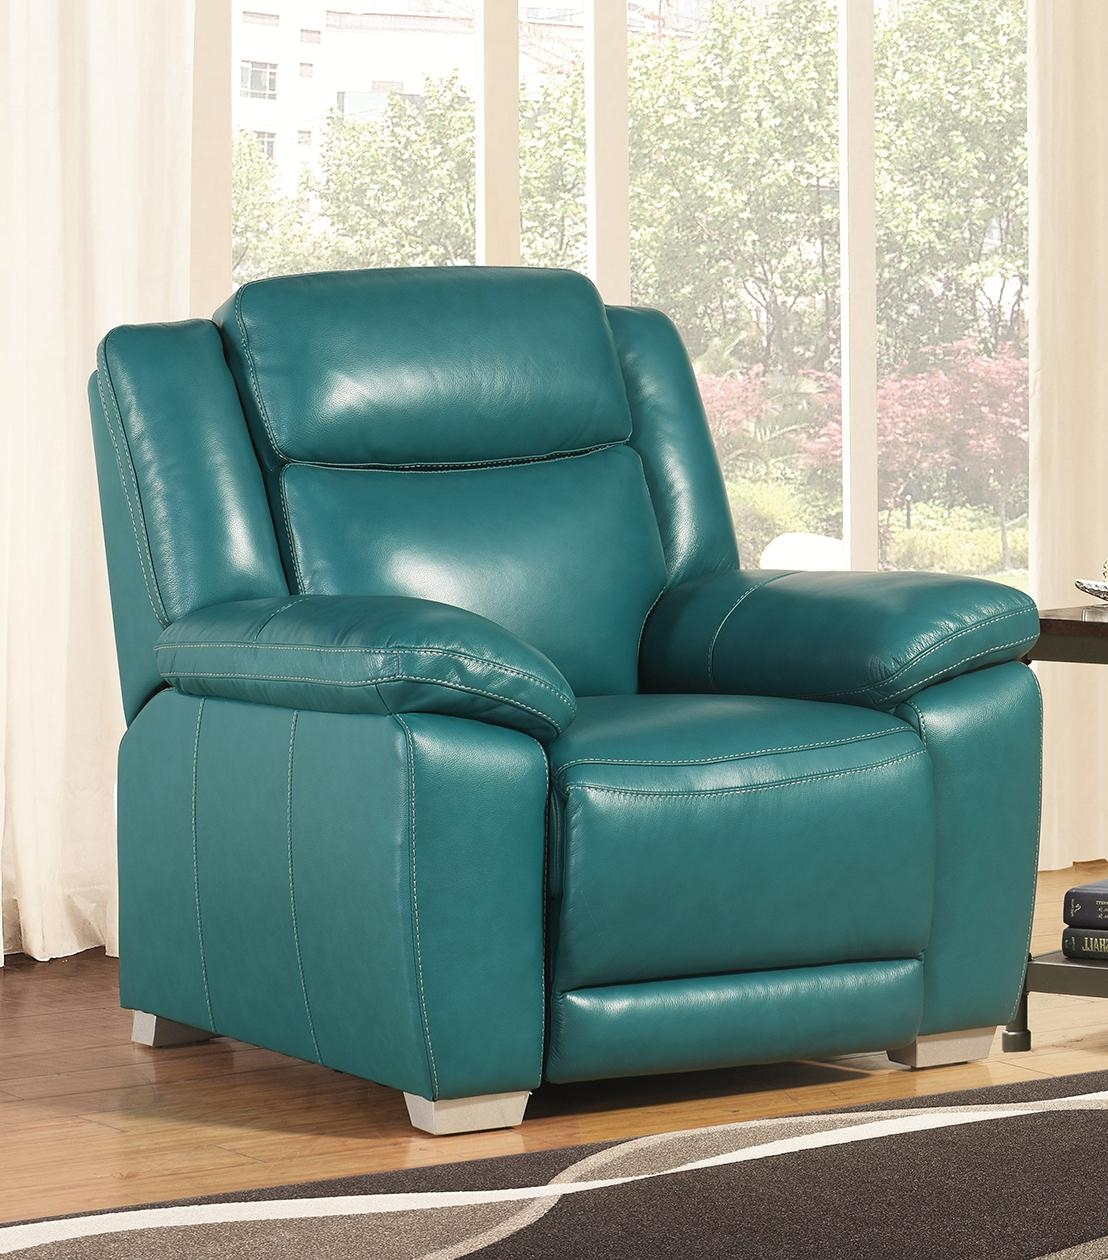 Recliners : Layla Leather Push Back Recliner Pertaining To Abbyson Recliners (View 19 of 20)